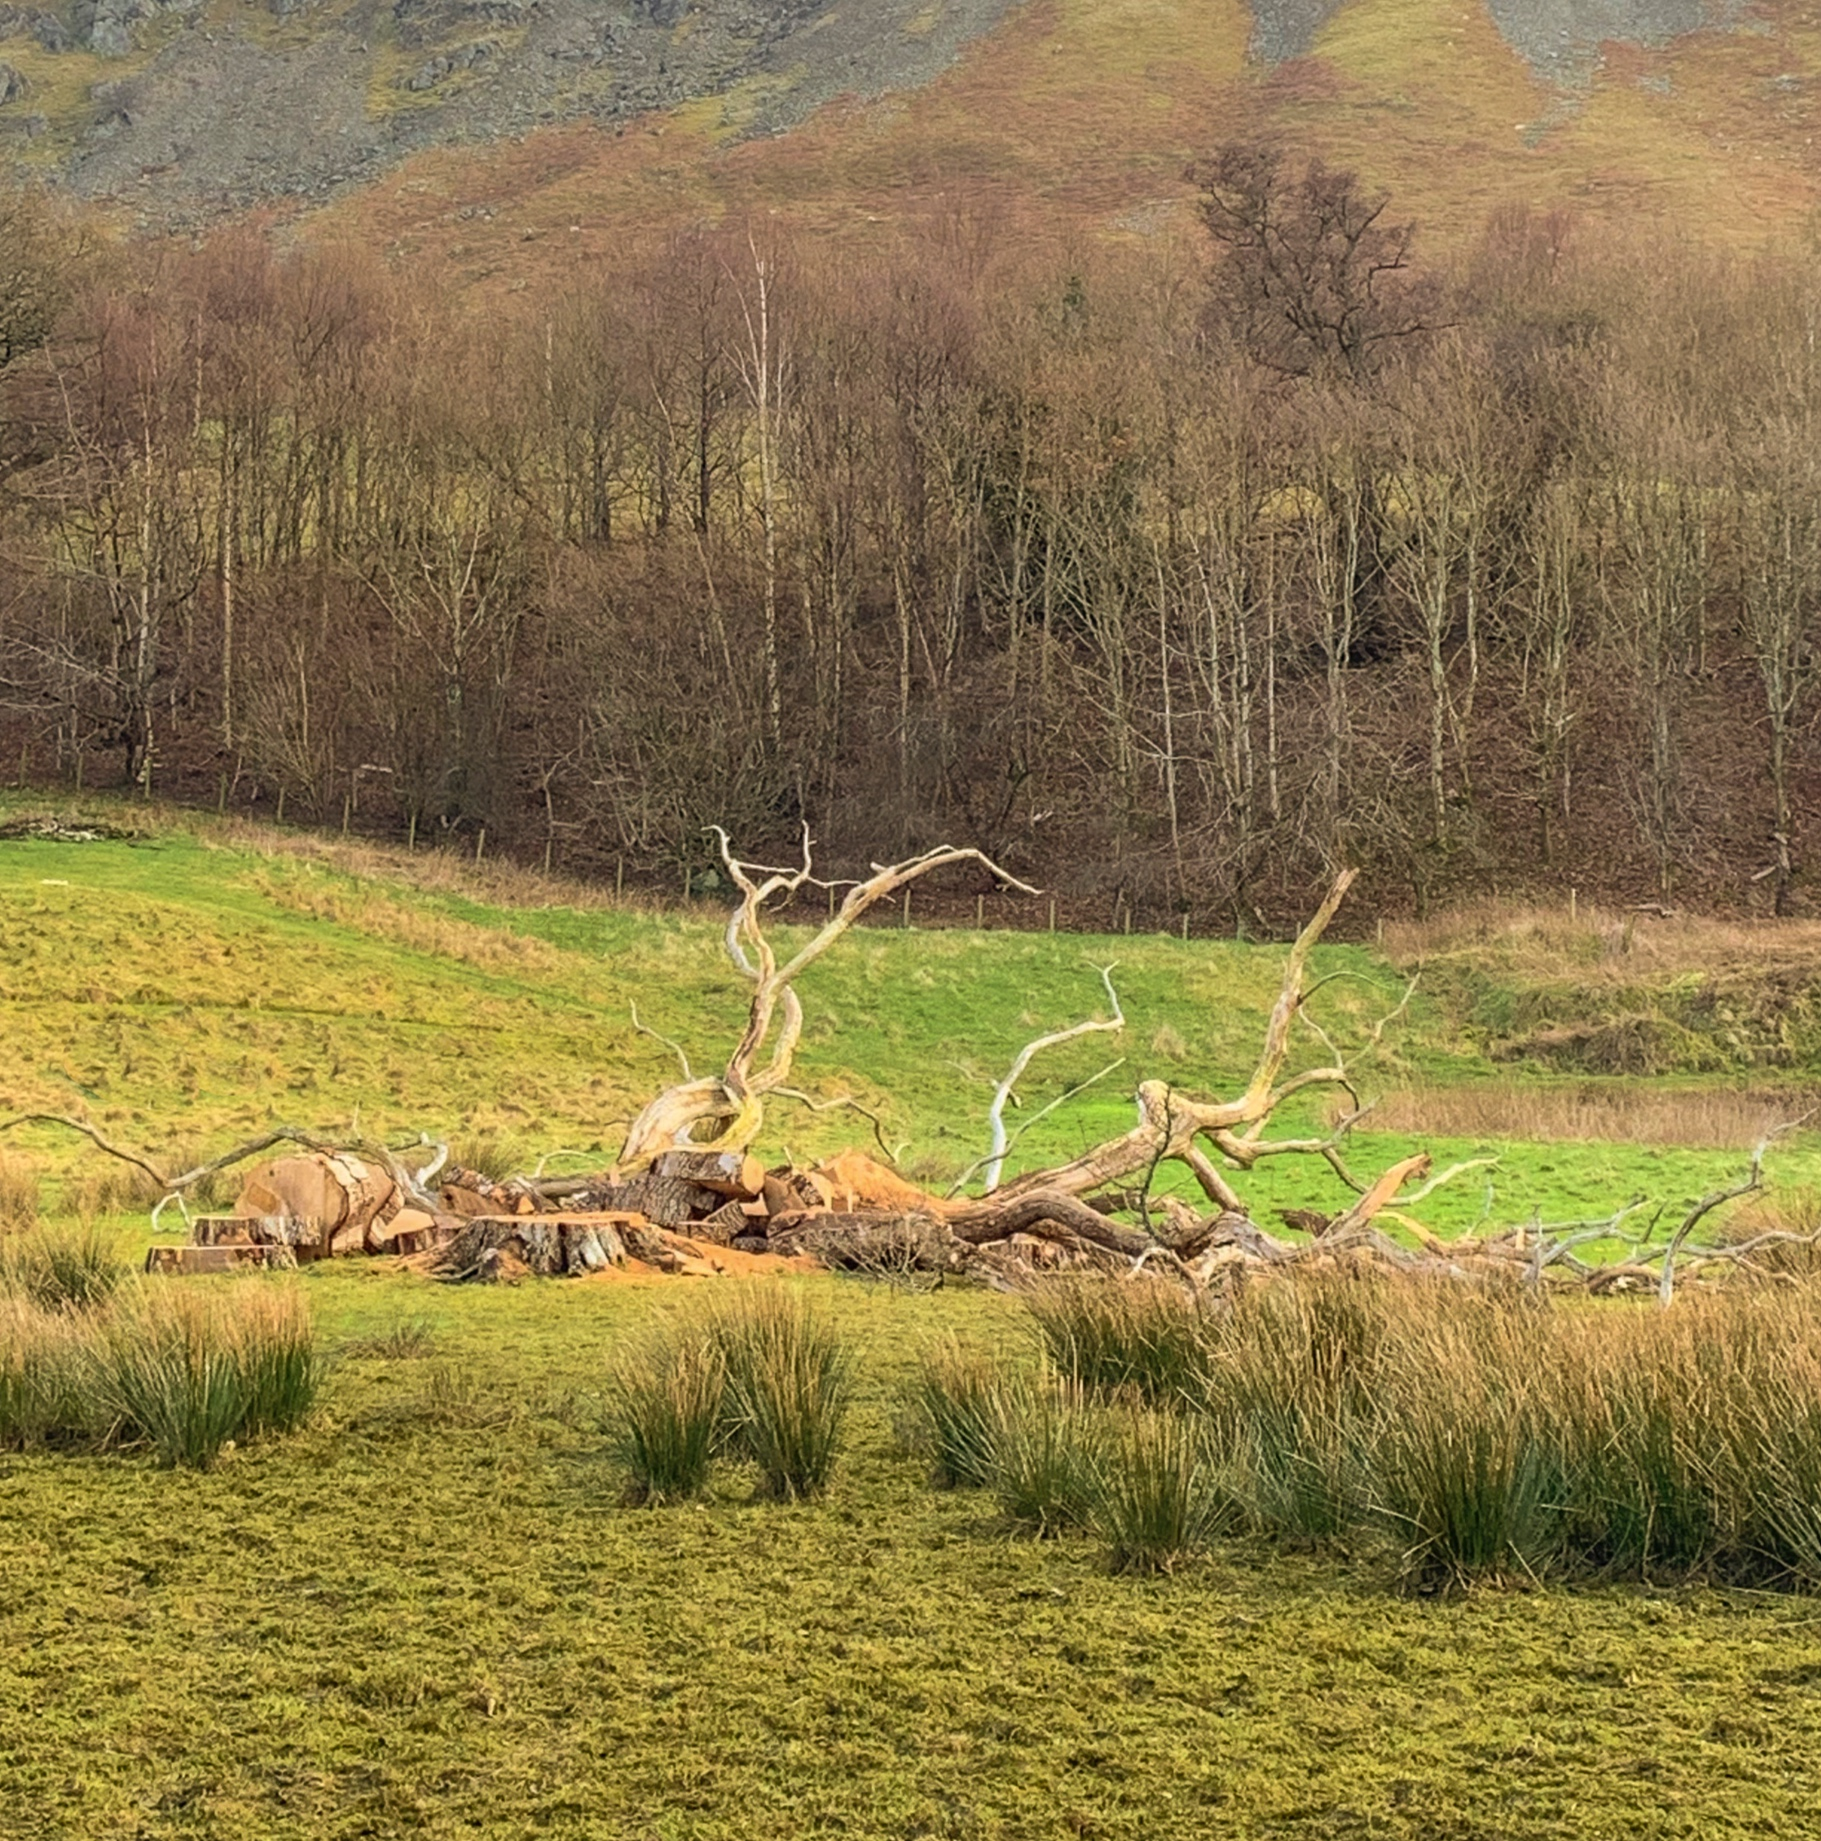 The+Fallen+Tree+-+Blog+Image+Lake+District.jpg